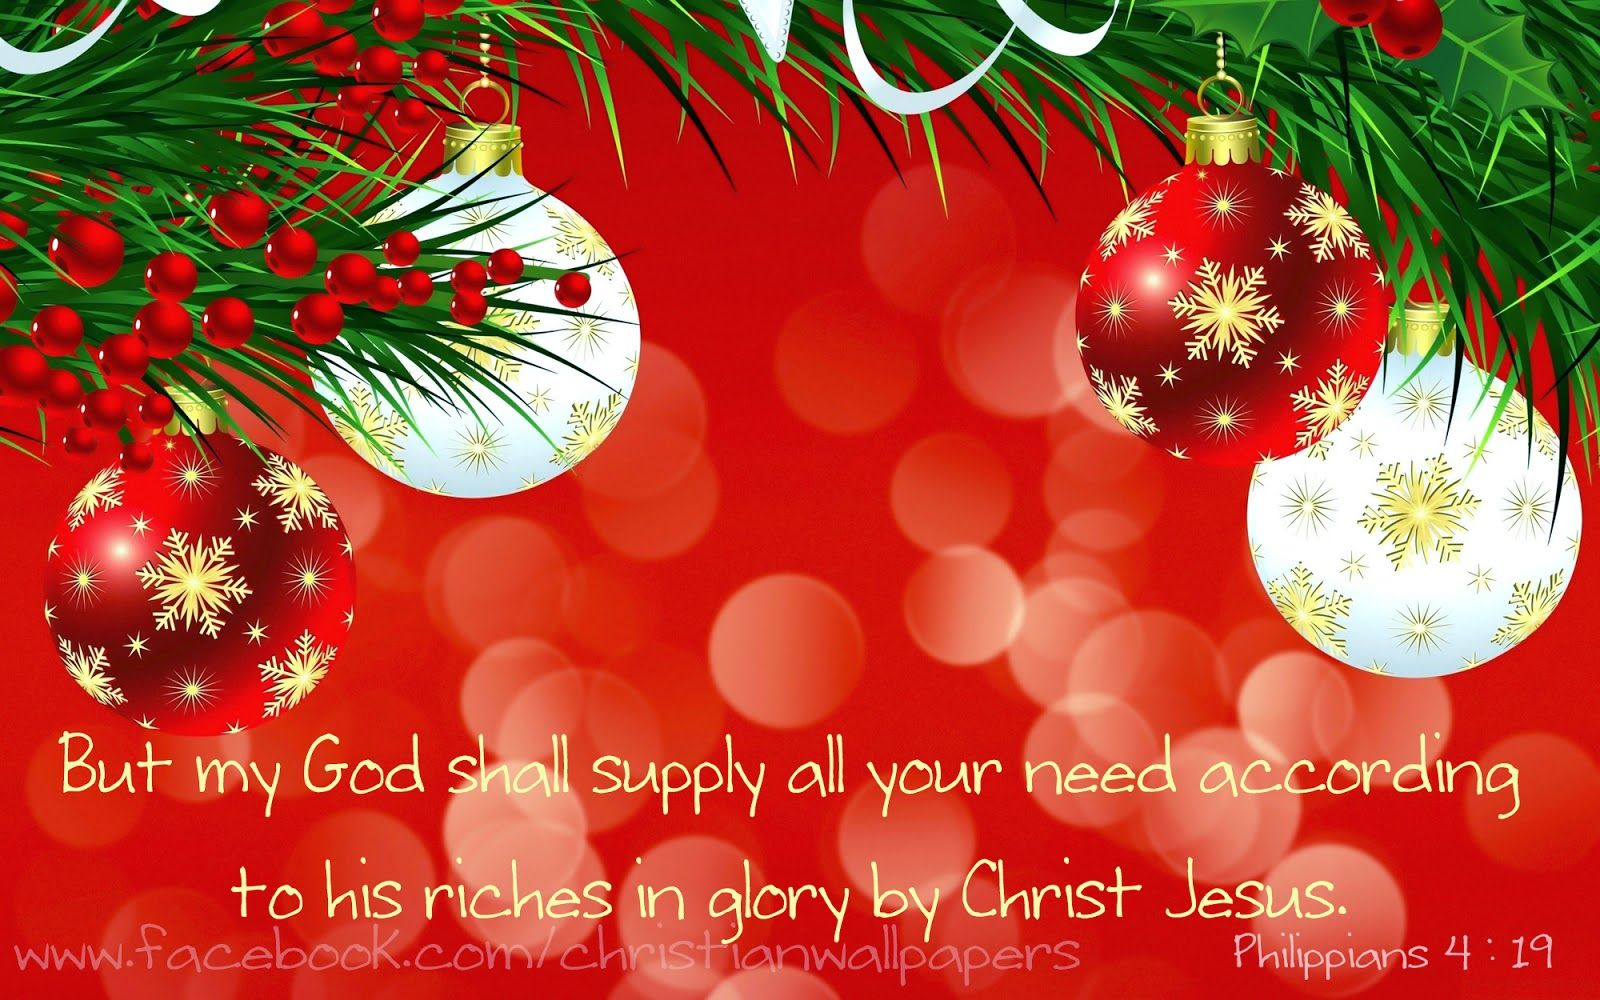 New year greetings bible verses gallery greeting card examples download hd christmas new year 2017 bible verse greetings card download hd christmas new year 2017 kristyandbryce Gallery